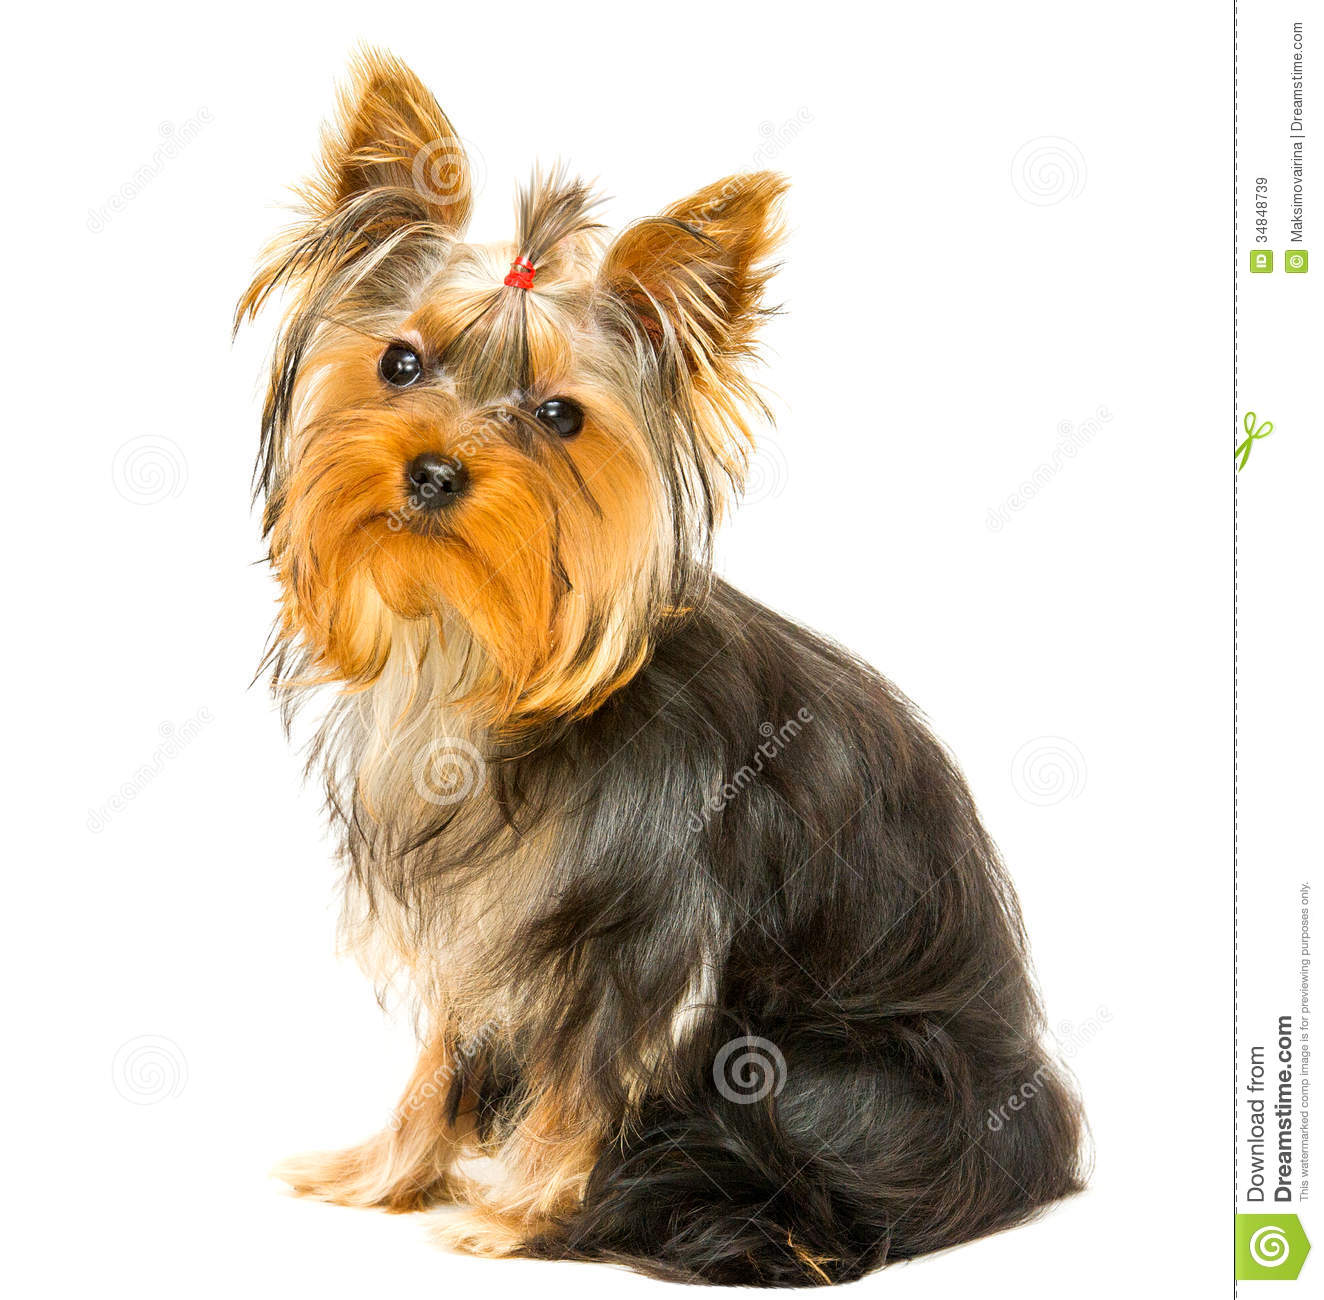 Yorkshire Terrier, 6 months old, sitting in front of white background.